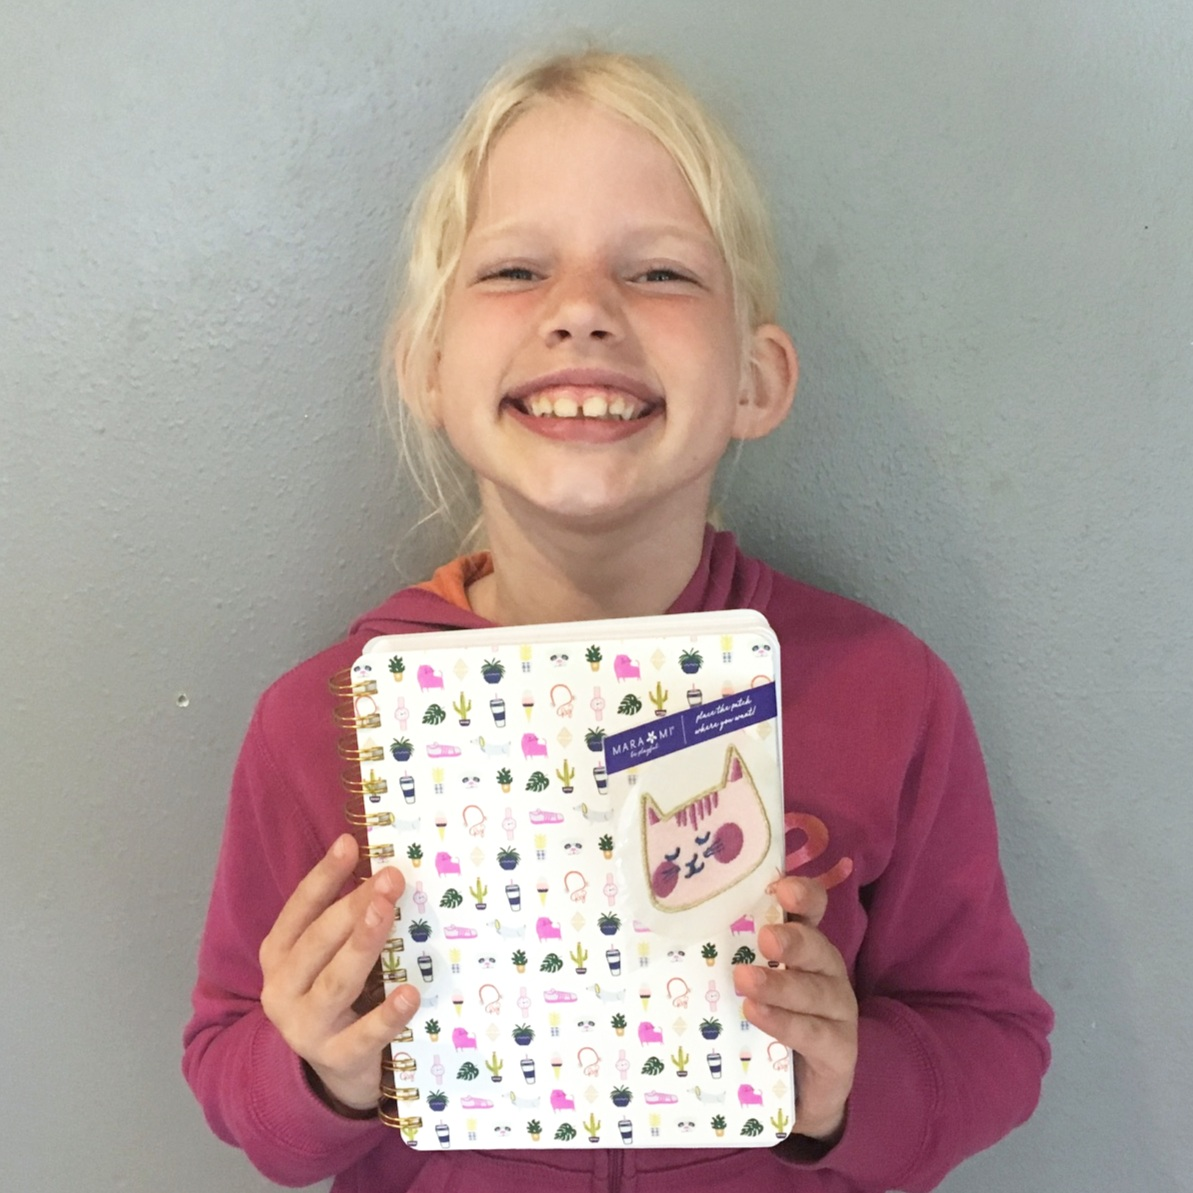 Eden (7) with her new writing journal. She is very excited about it!